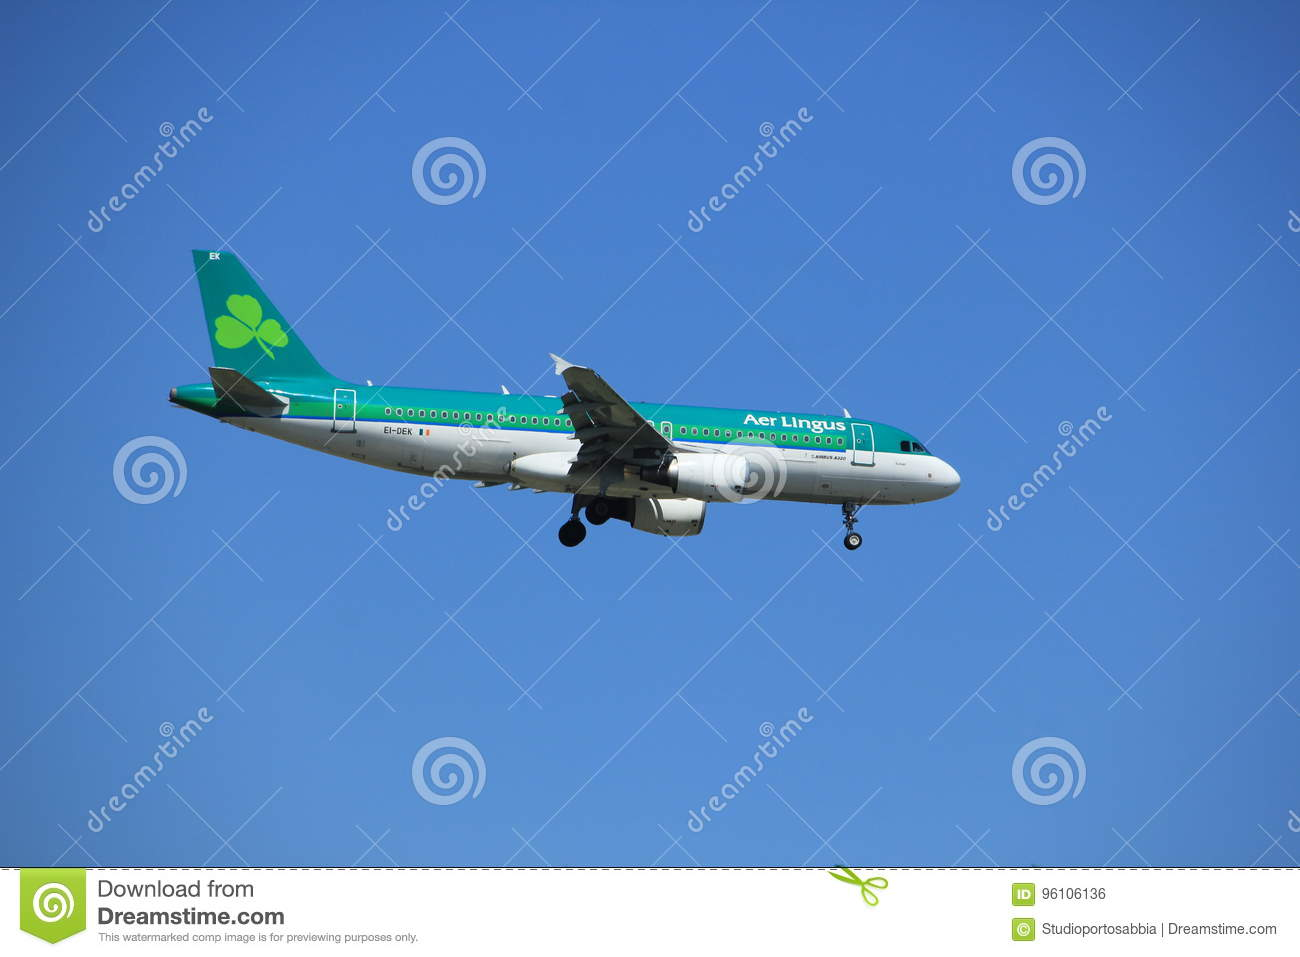 Amsterdam the Netherlands - July 9th 2017: EI-DEK Aer Lingus Airbus A320-214